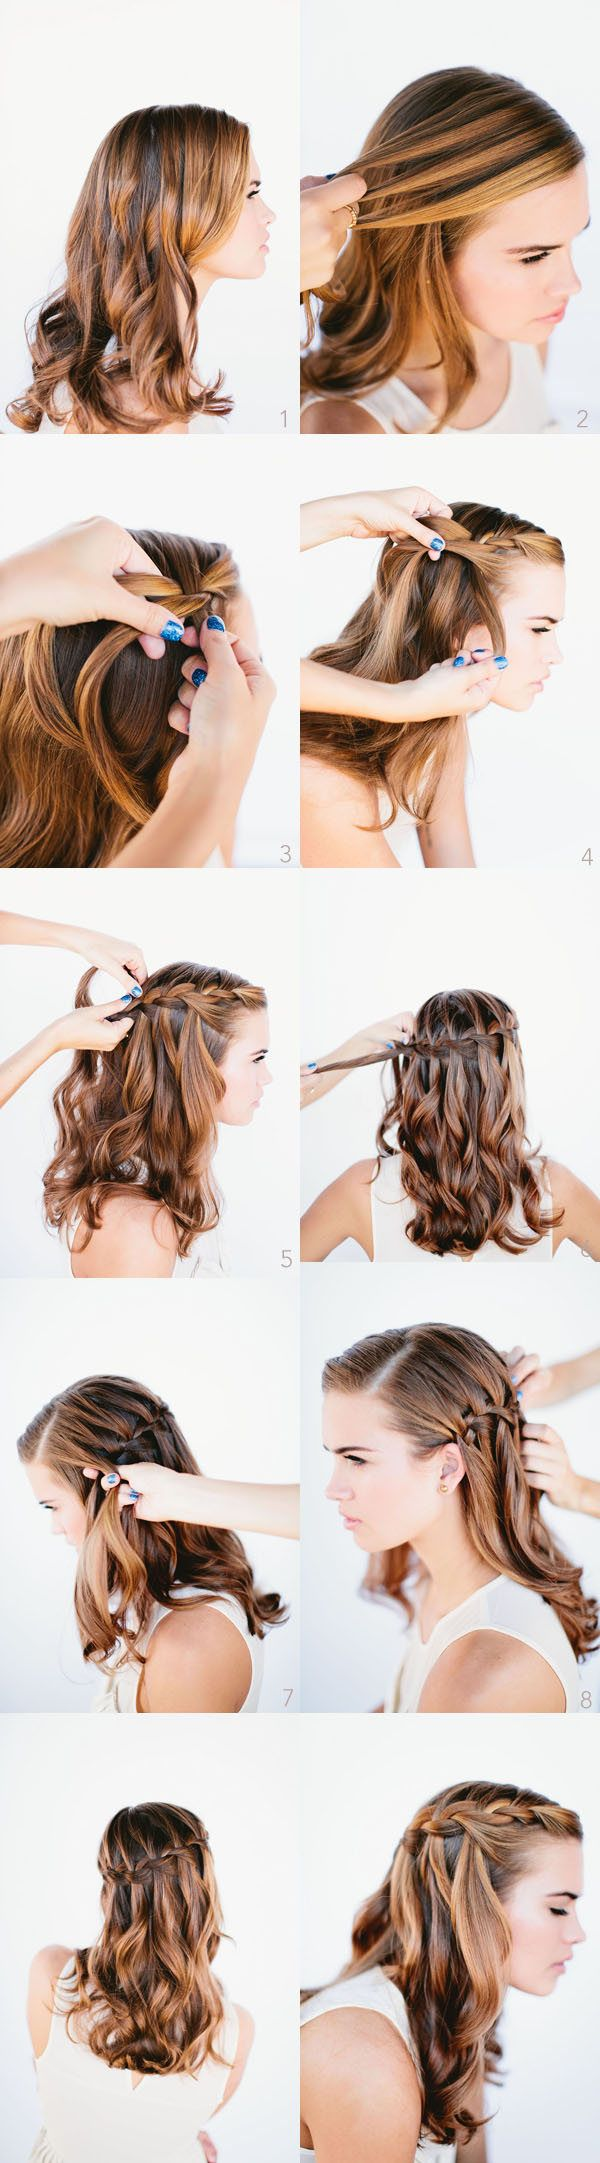 I need someone to teach me how to do this on Brooklyn's hair - I'm not so great at picture tutorials…